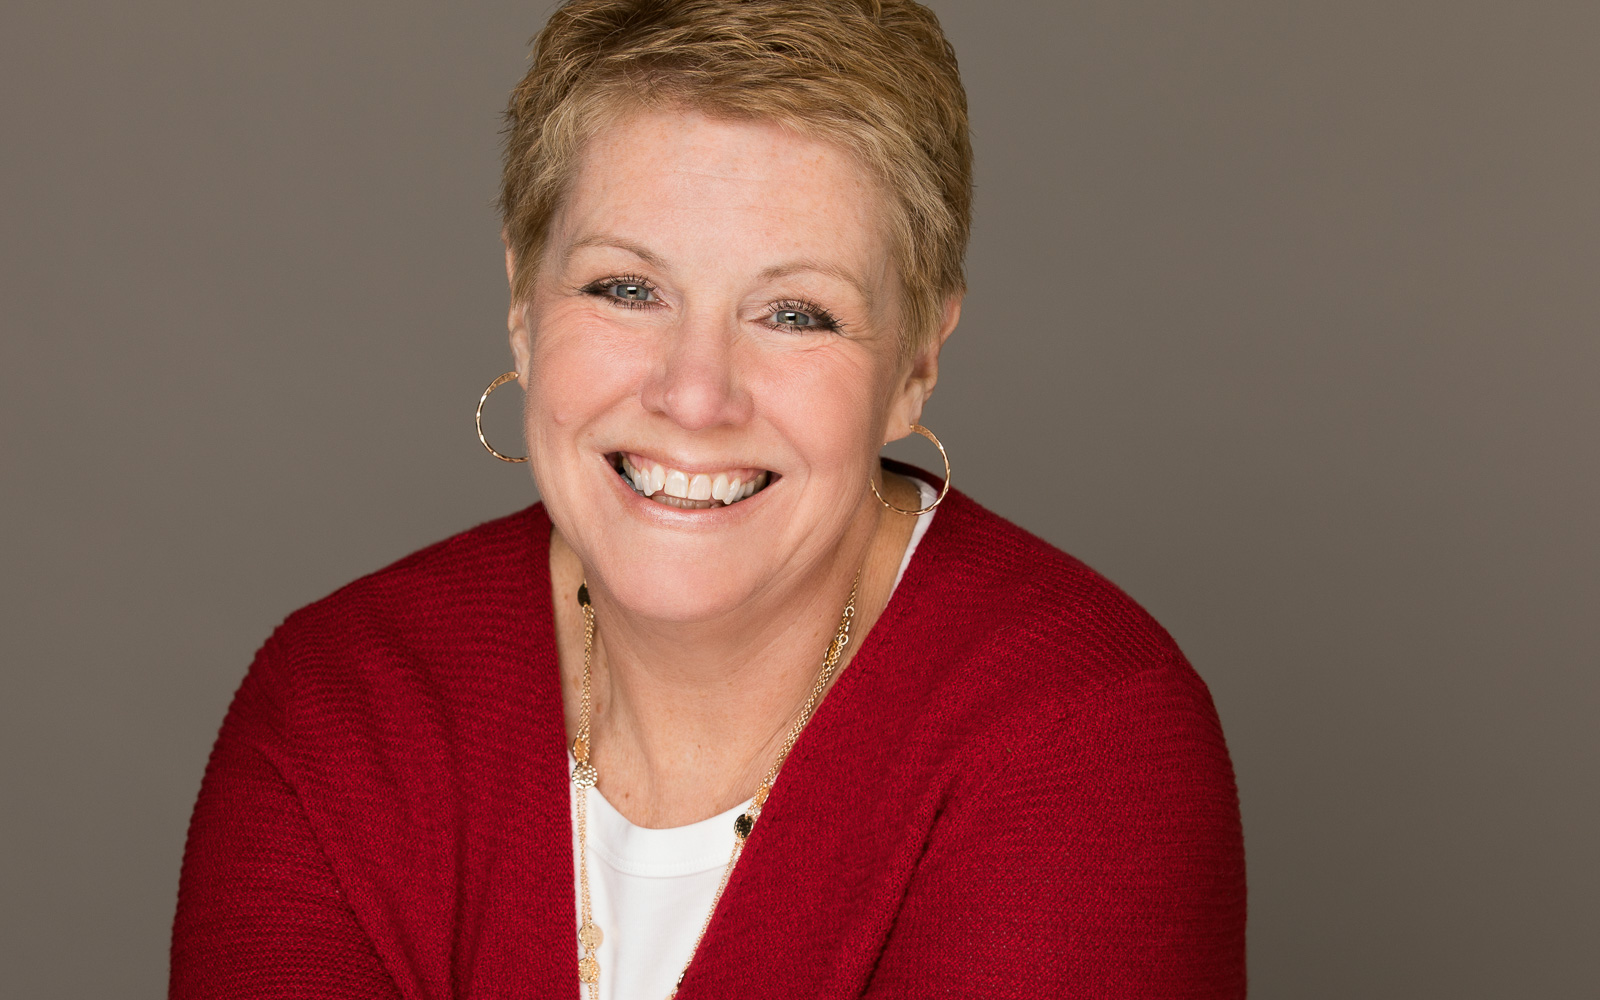 Olive Juice Studios - Rochester Minnesota Headshot and Business Photography -